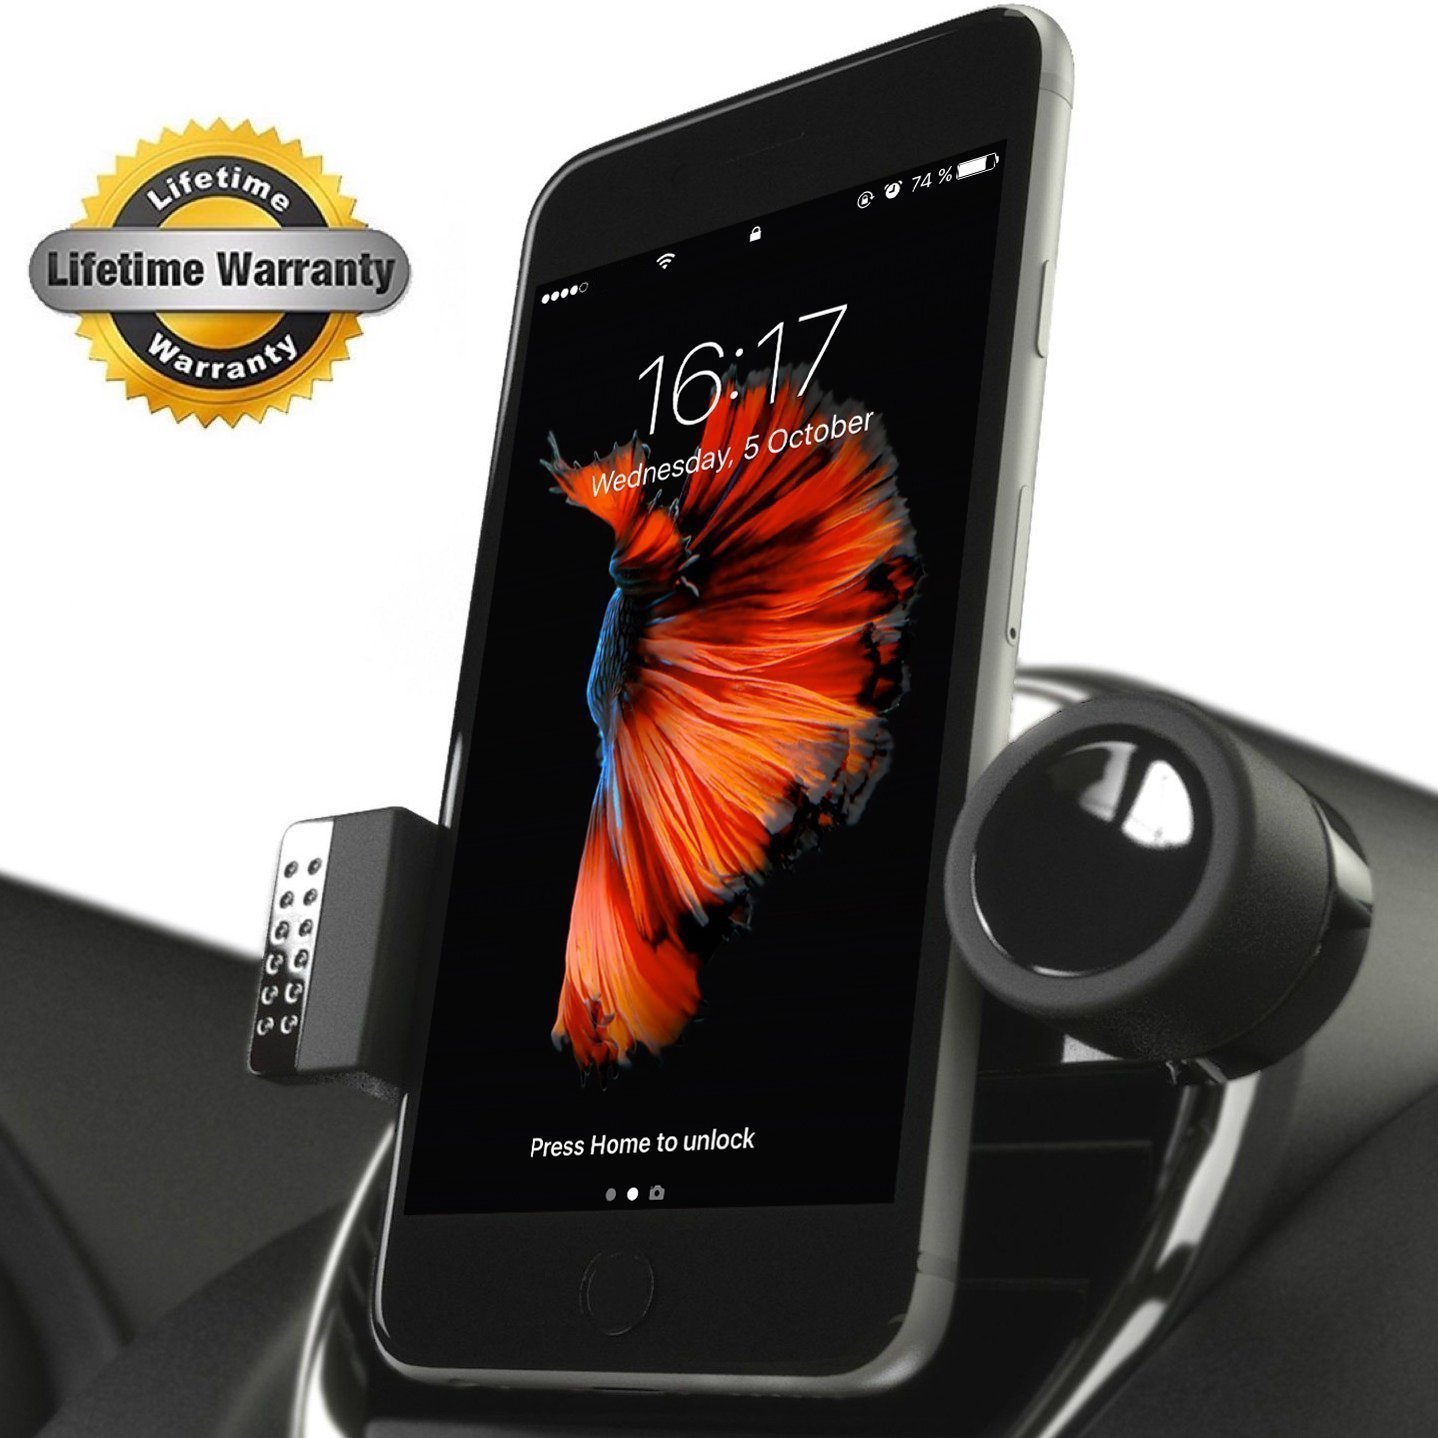 amazoncom luxury car cell phone mount holder for air vents 360 rotation fits all smartphones including iphone x 8 7 78 plus 6 6s 5